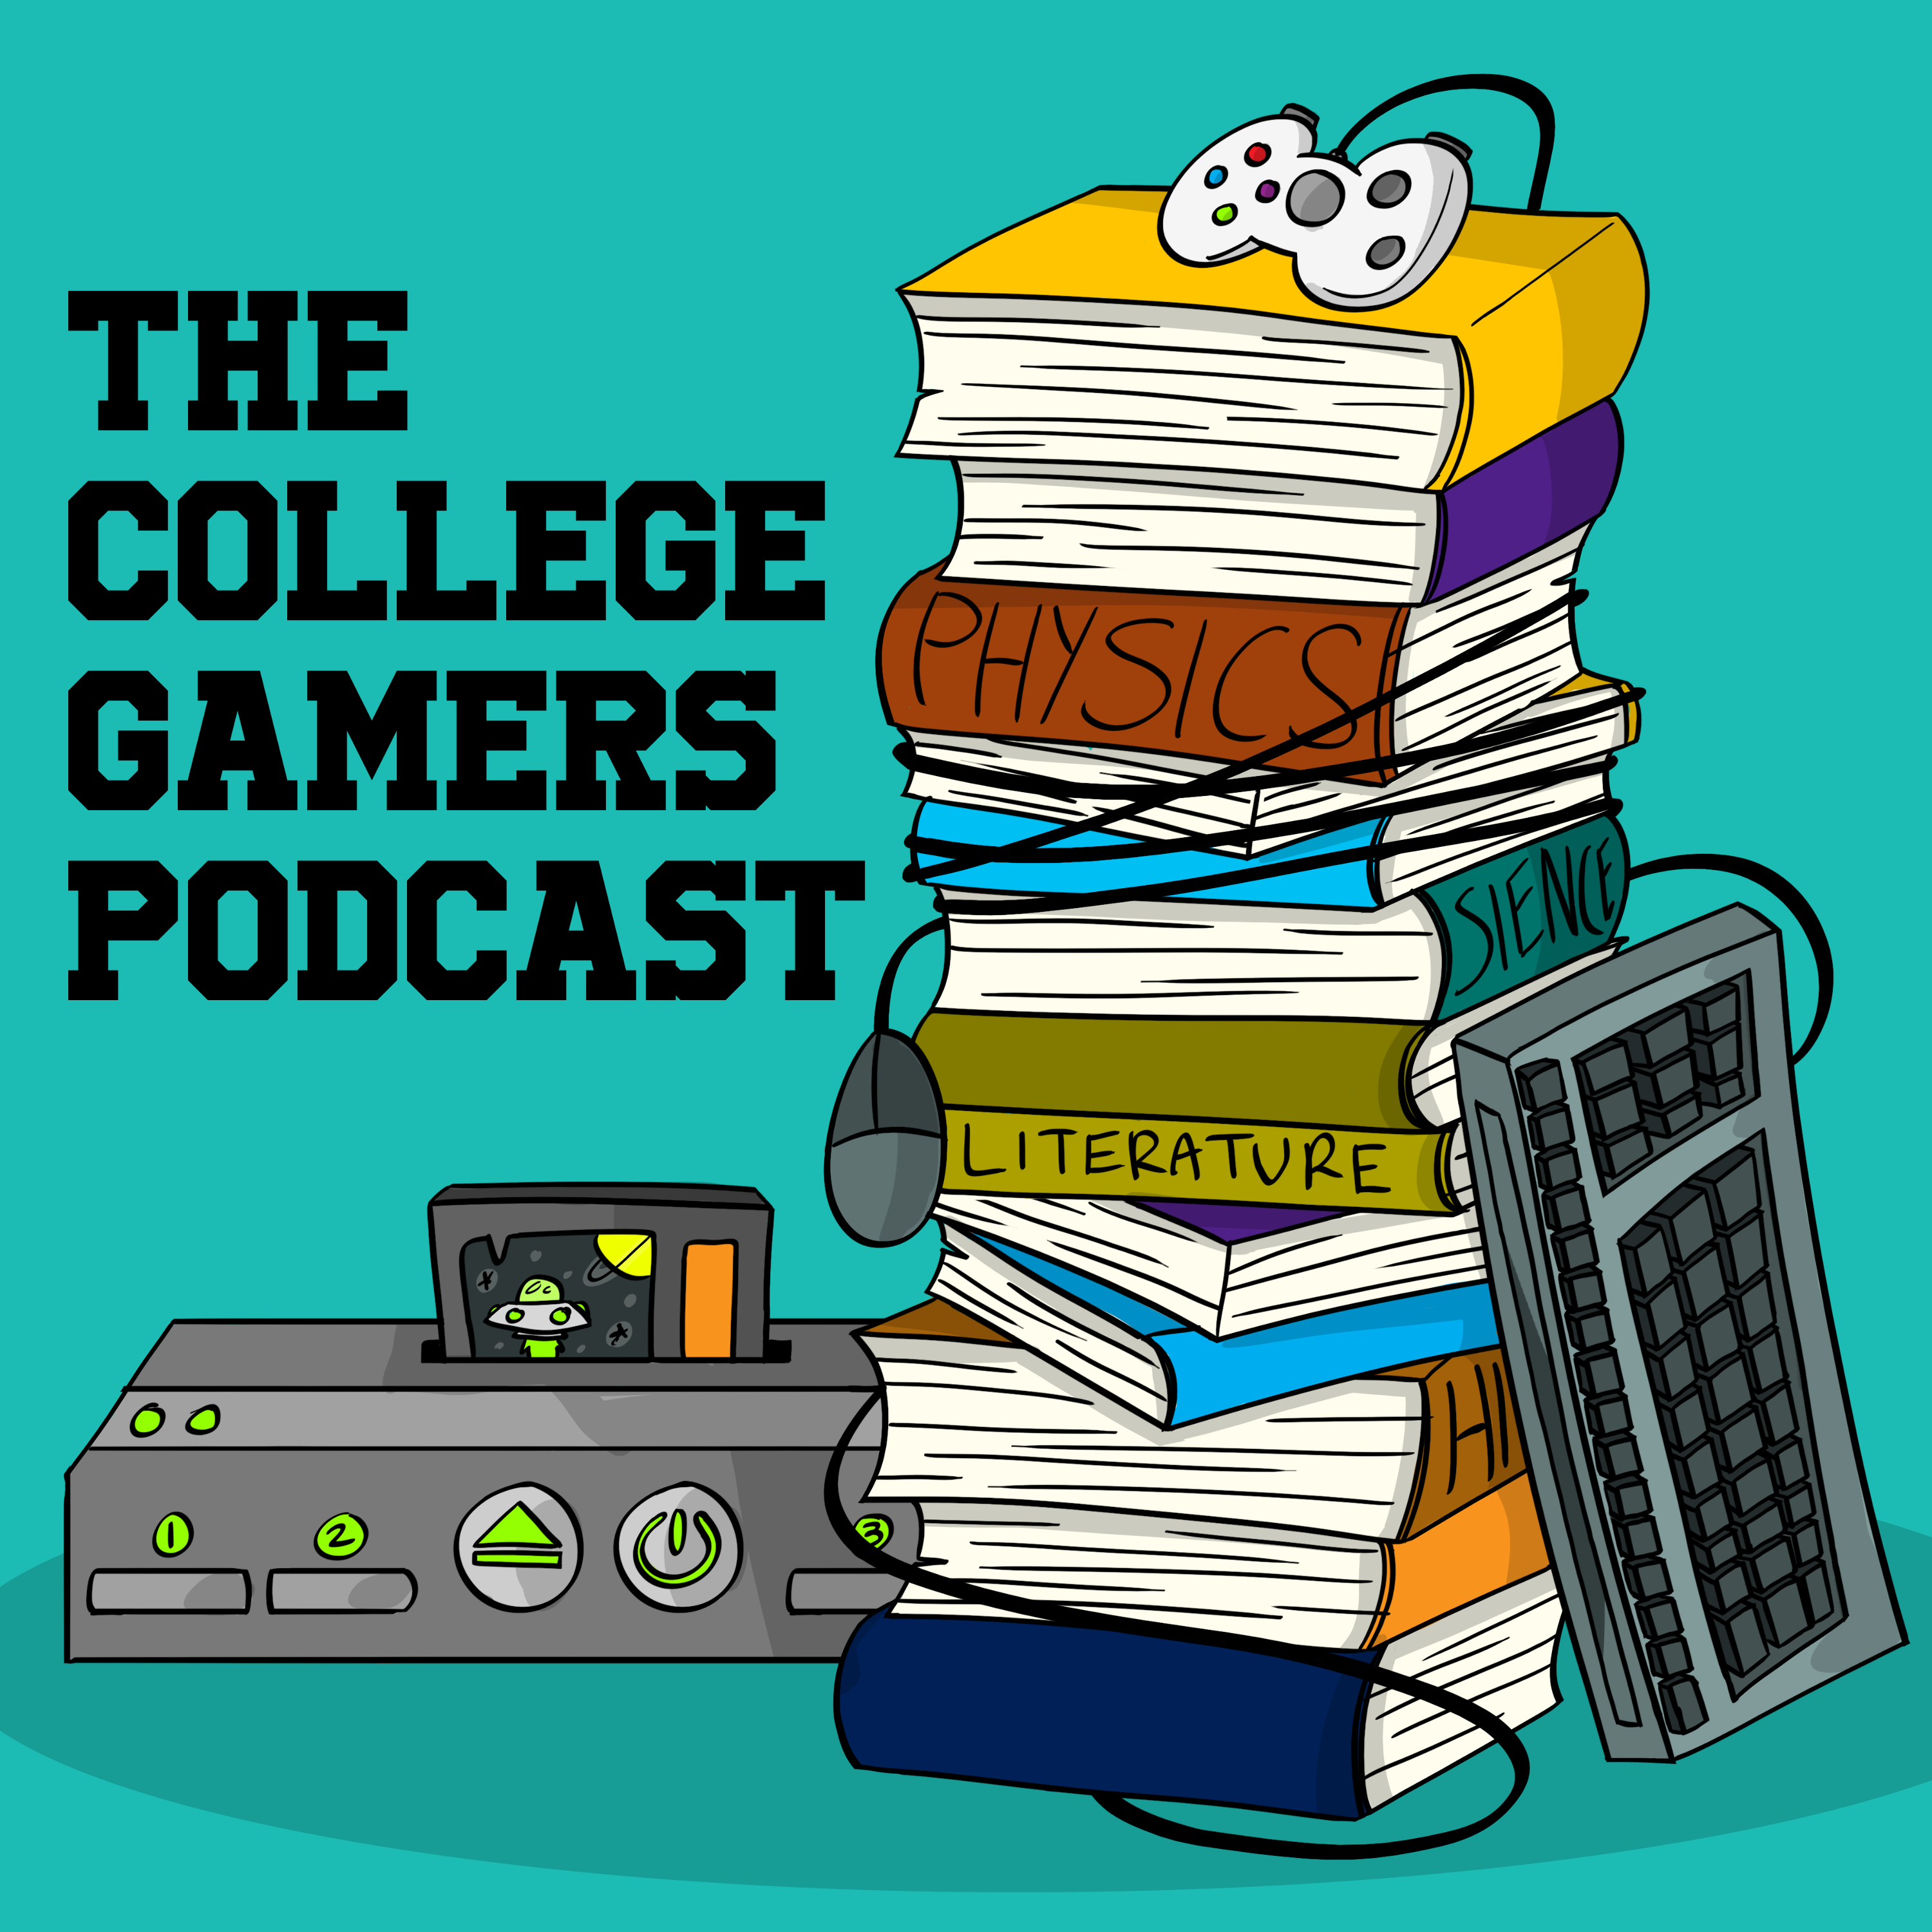 The College Gamers Podcast logo